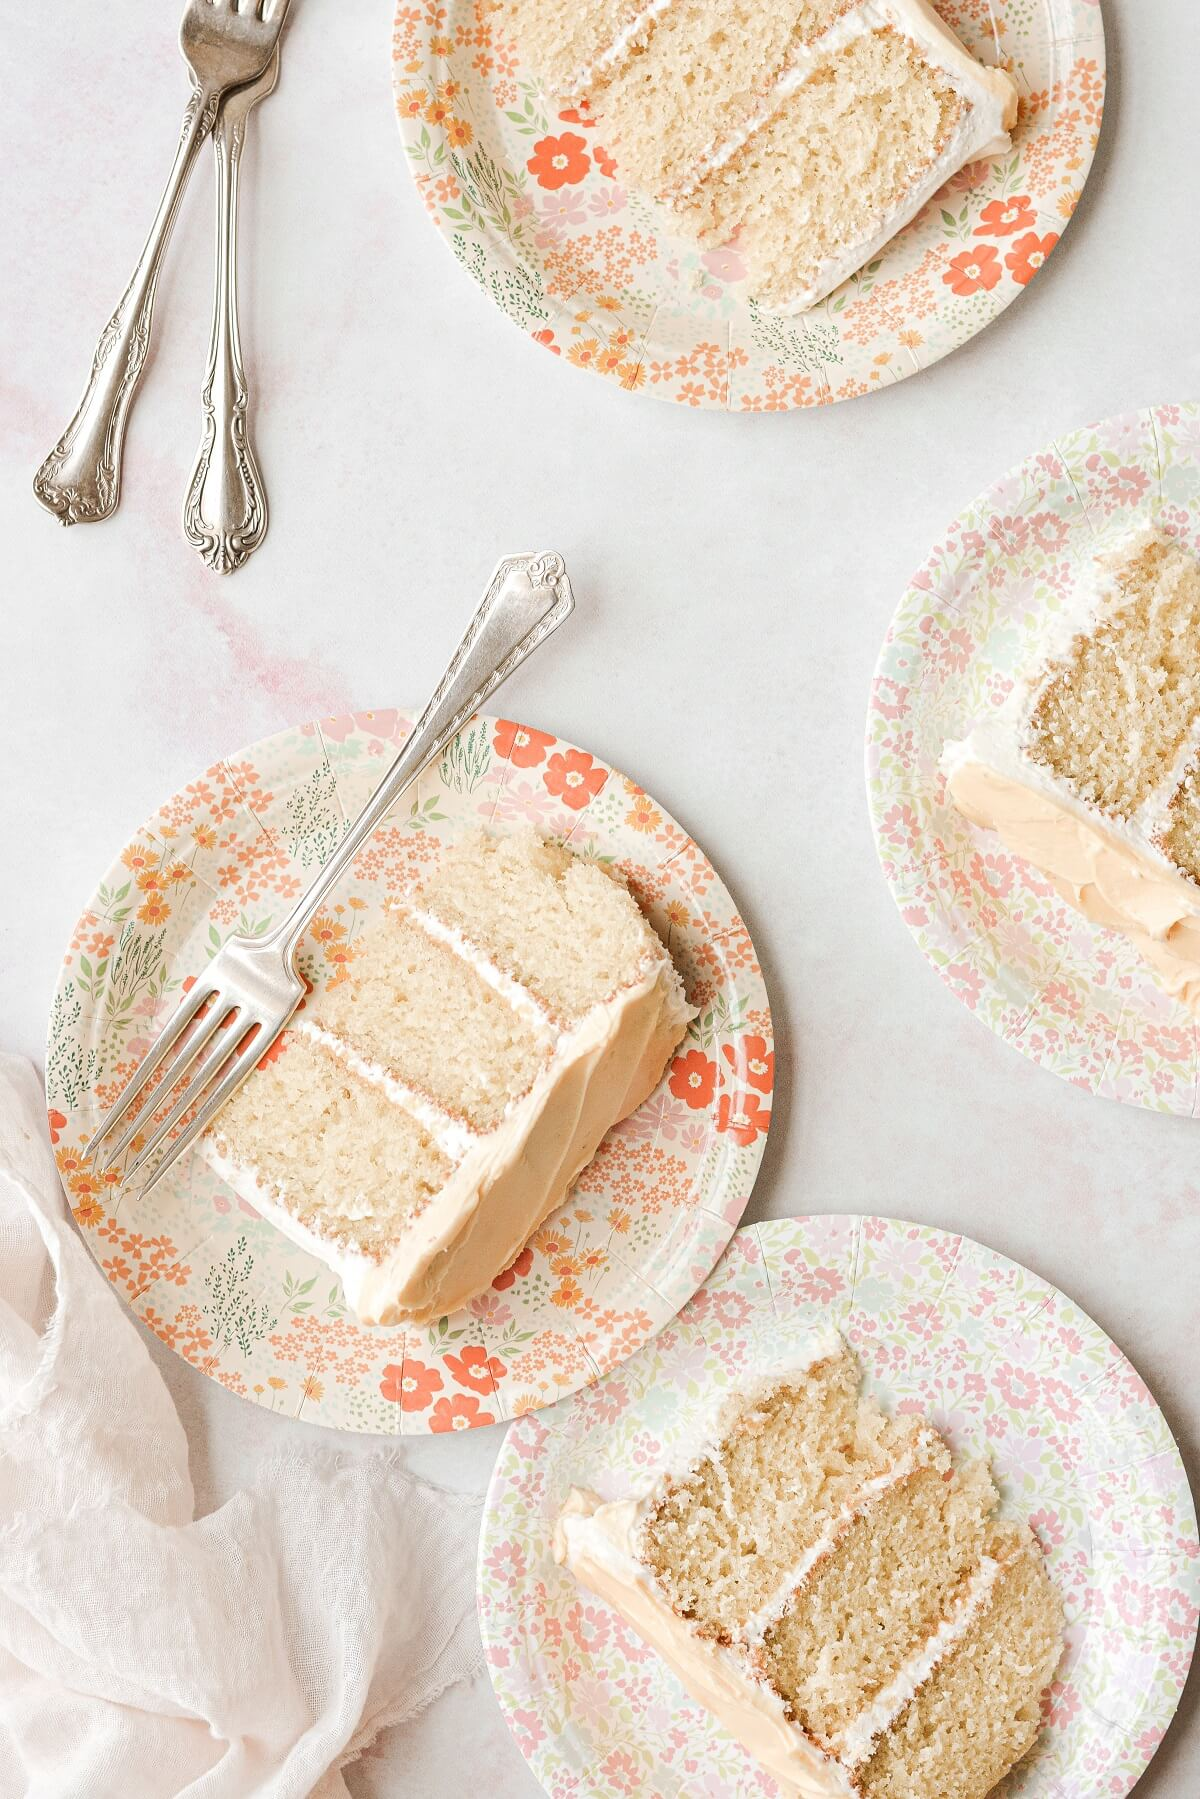 Slices of mimosa cake on flowered paper plates.